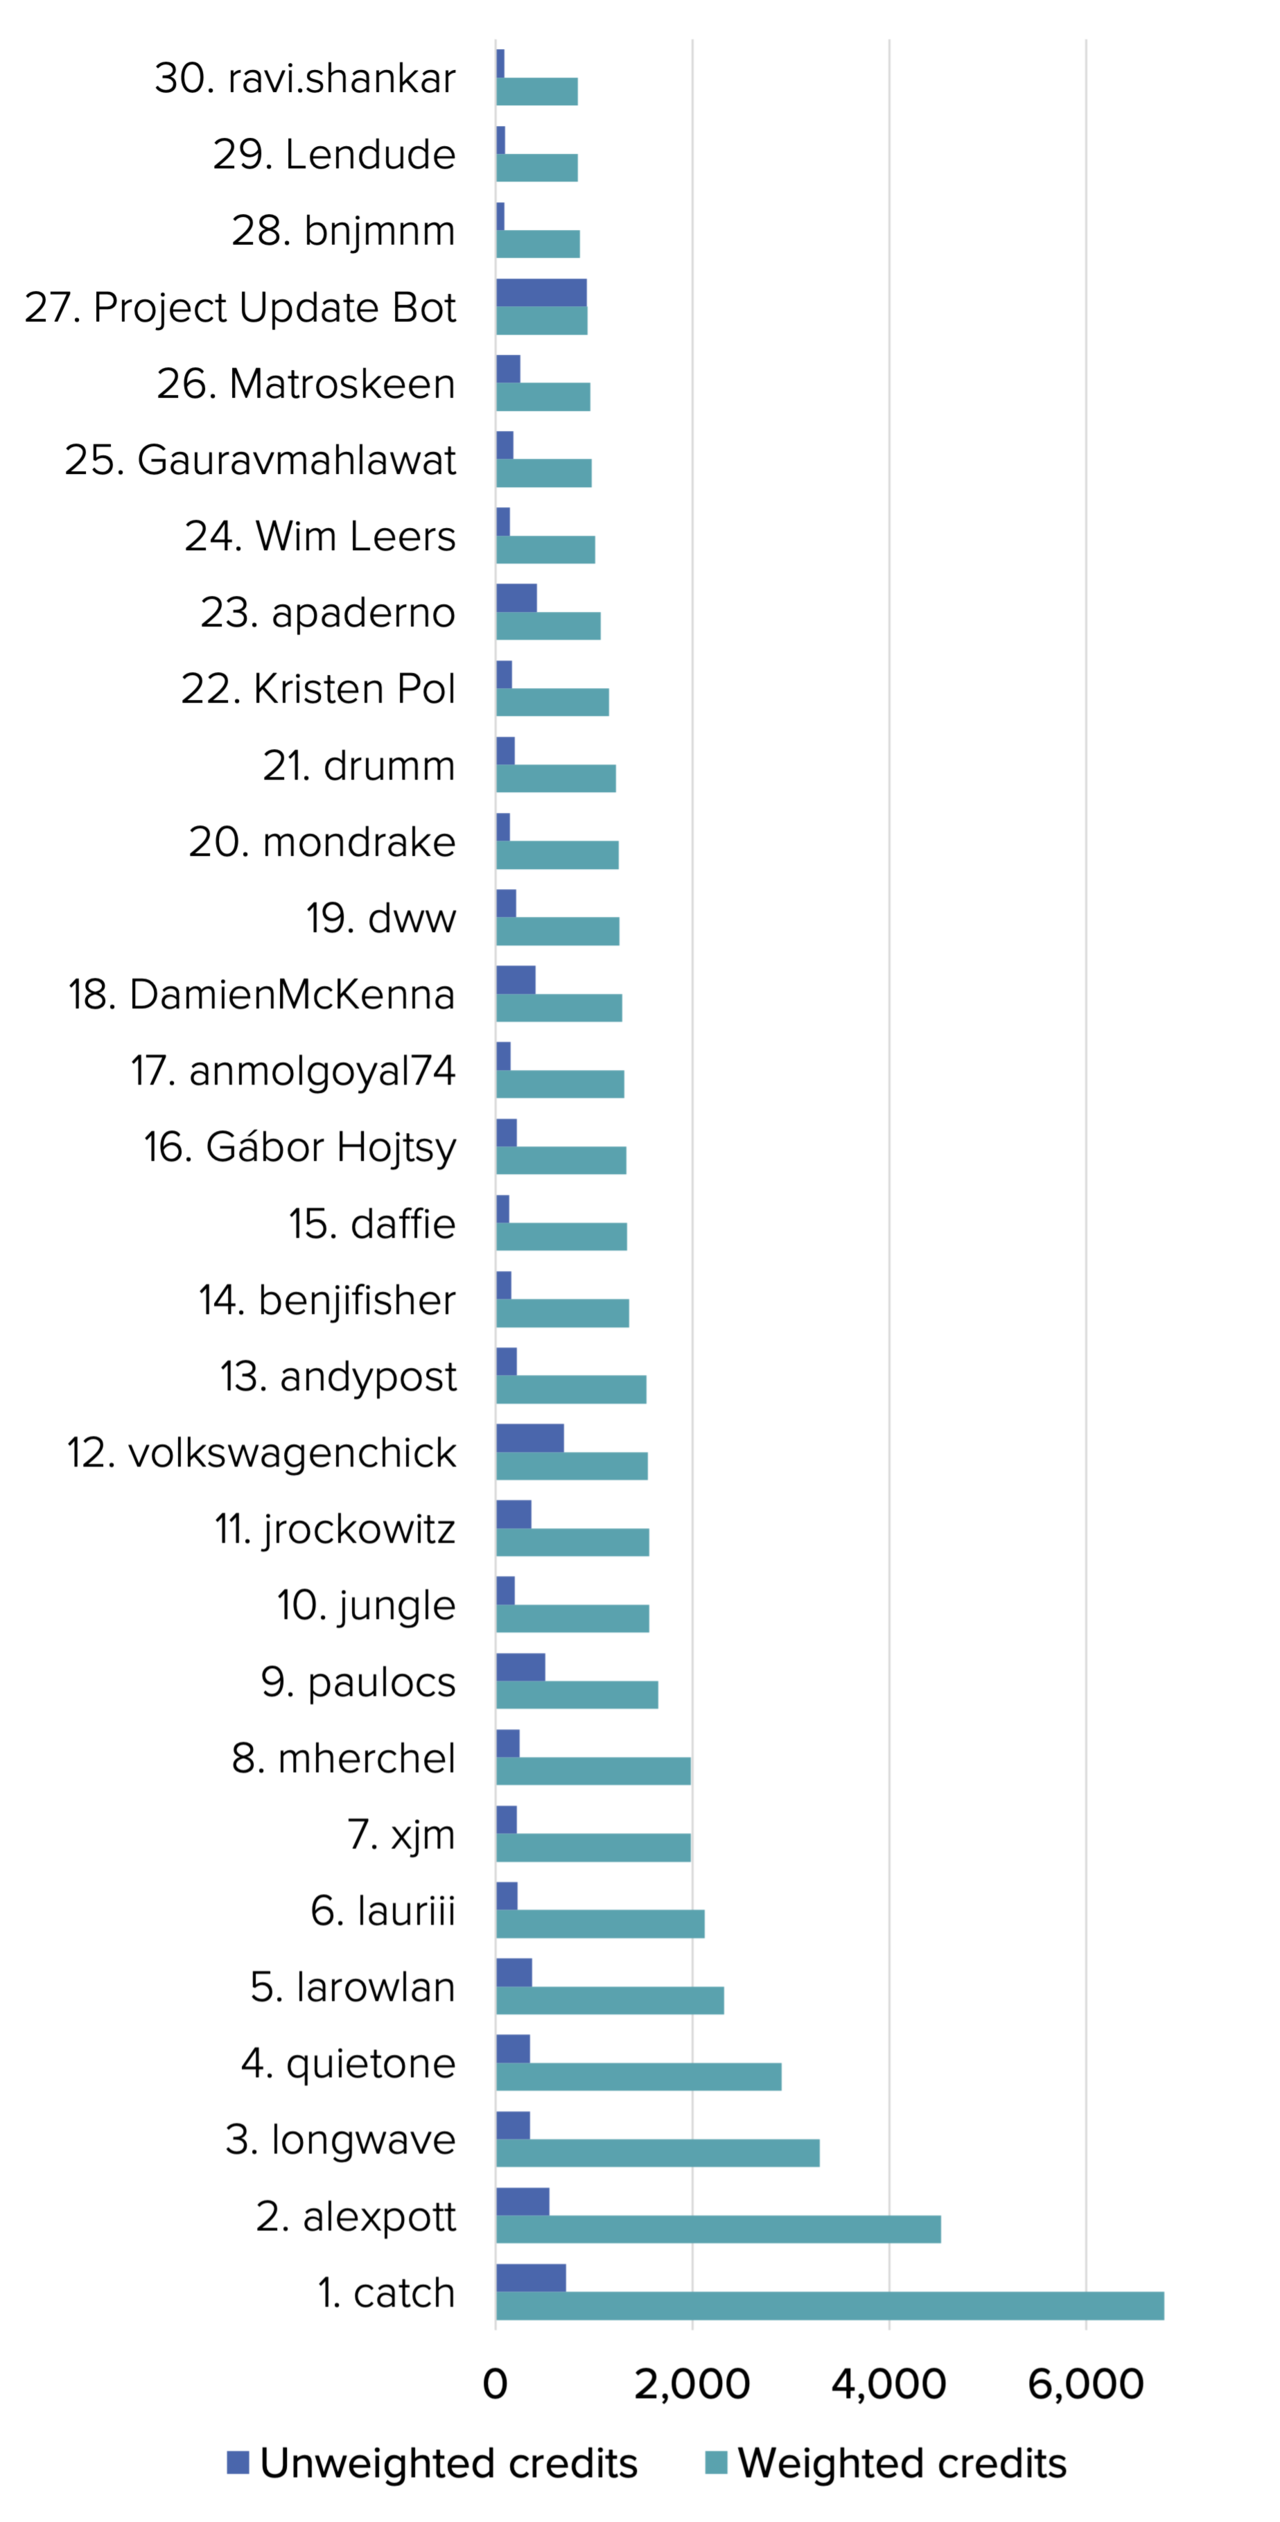 A graph showing the top 30 individual contributors ranked by the impact of their contributions.